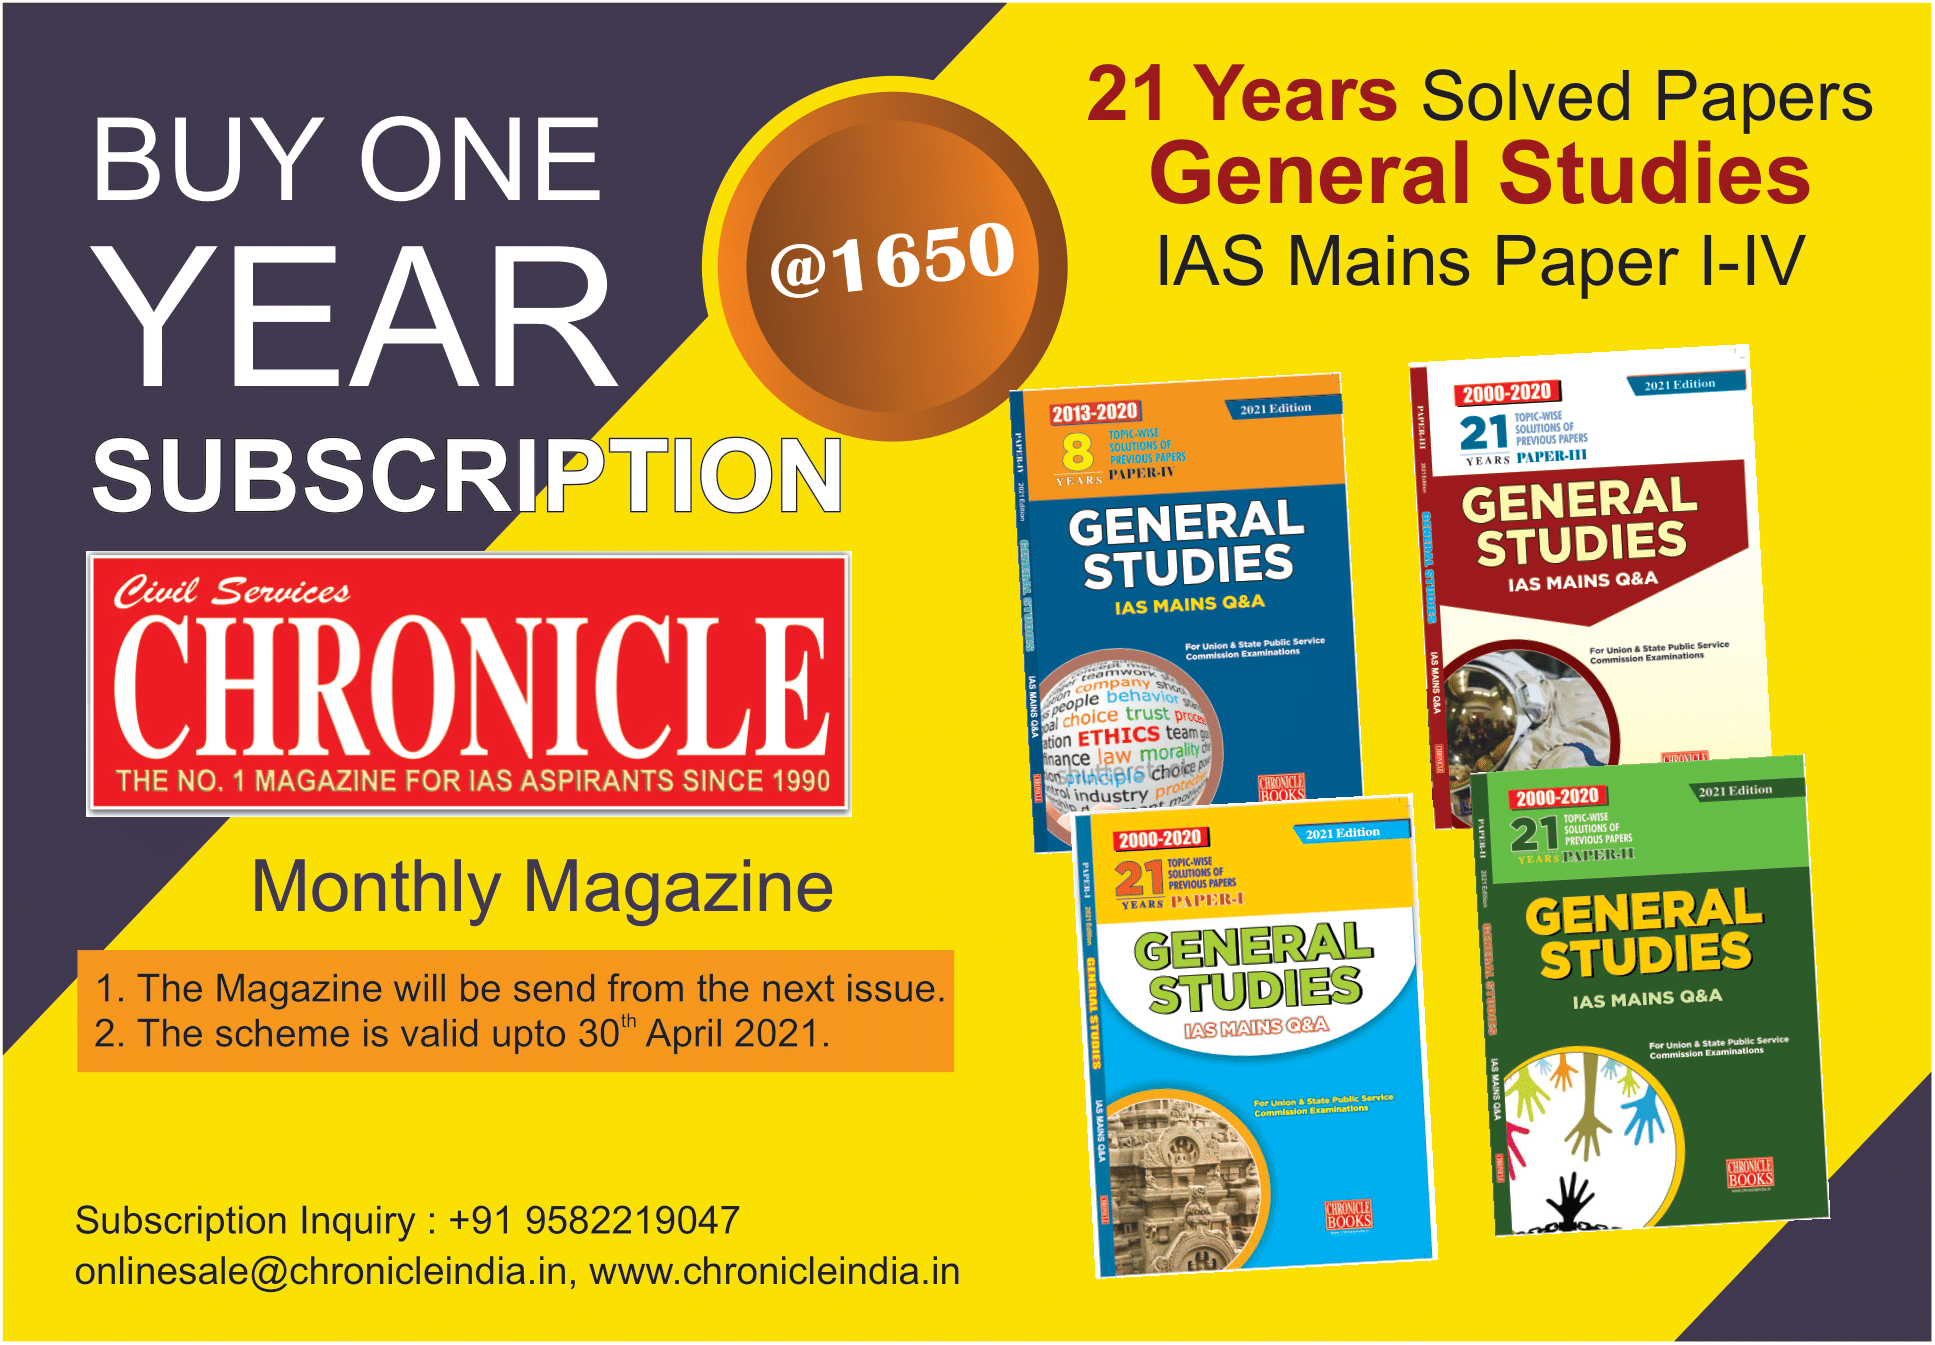 Civil Services Chronicle Subscription With 21 Years Solved Papers General Studies IAS Mains Q&A Paper I-IV